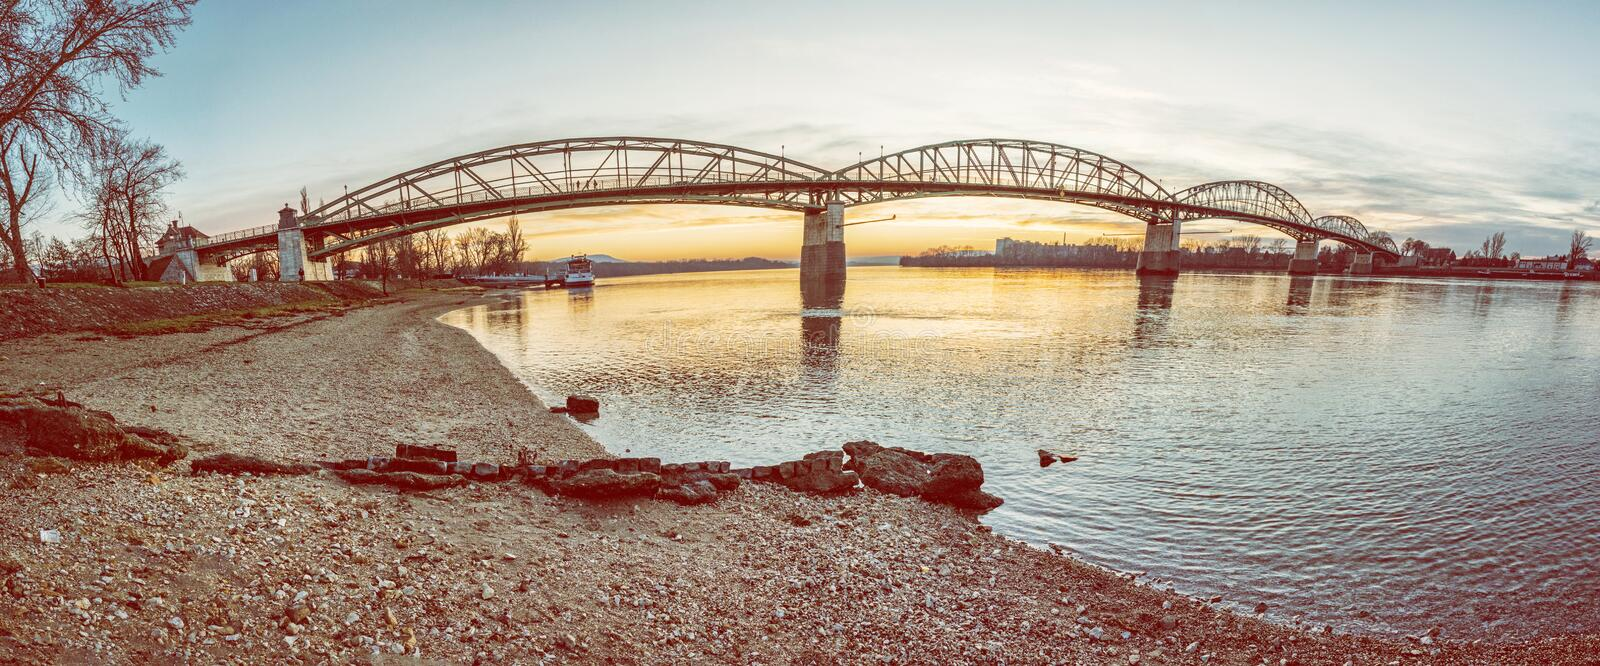 Maria Valeria bridge from Esztergom to Sturovo royalty free stock image